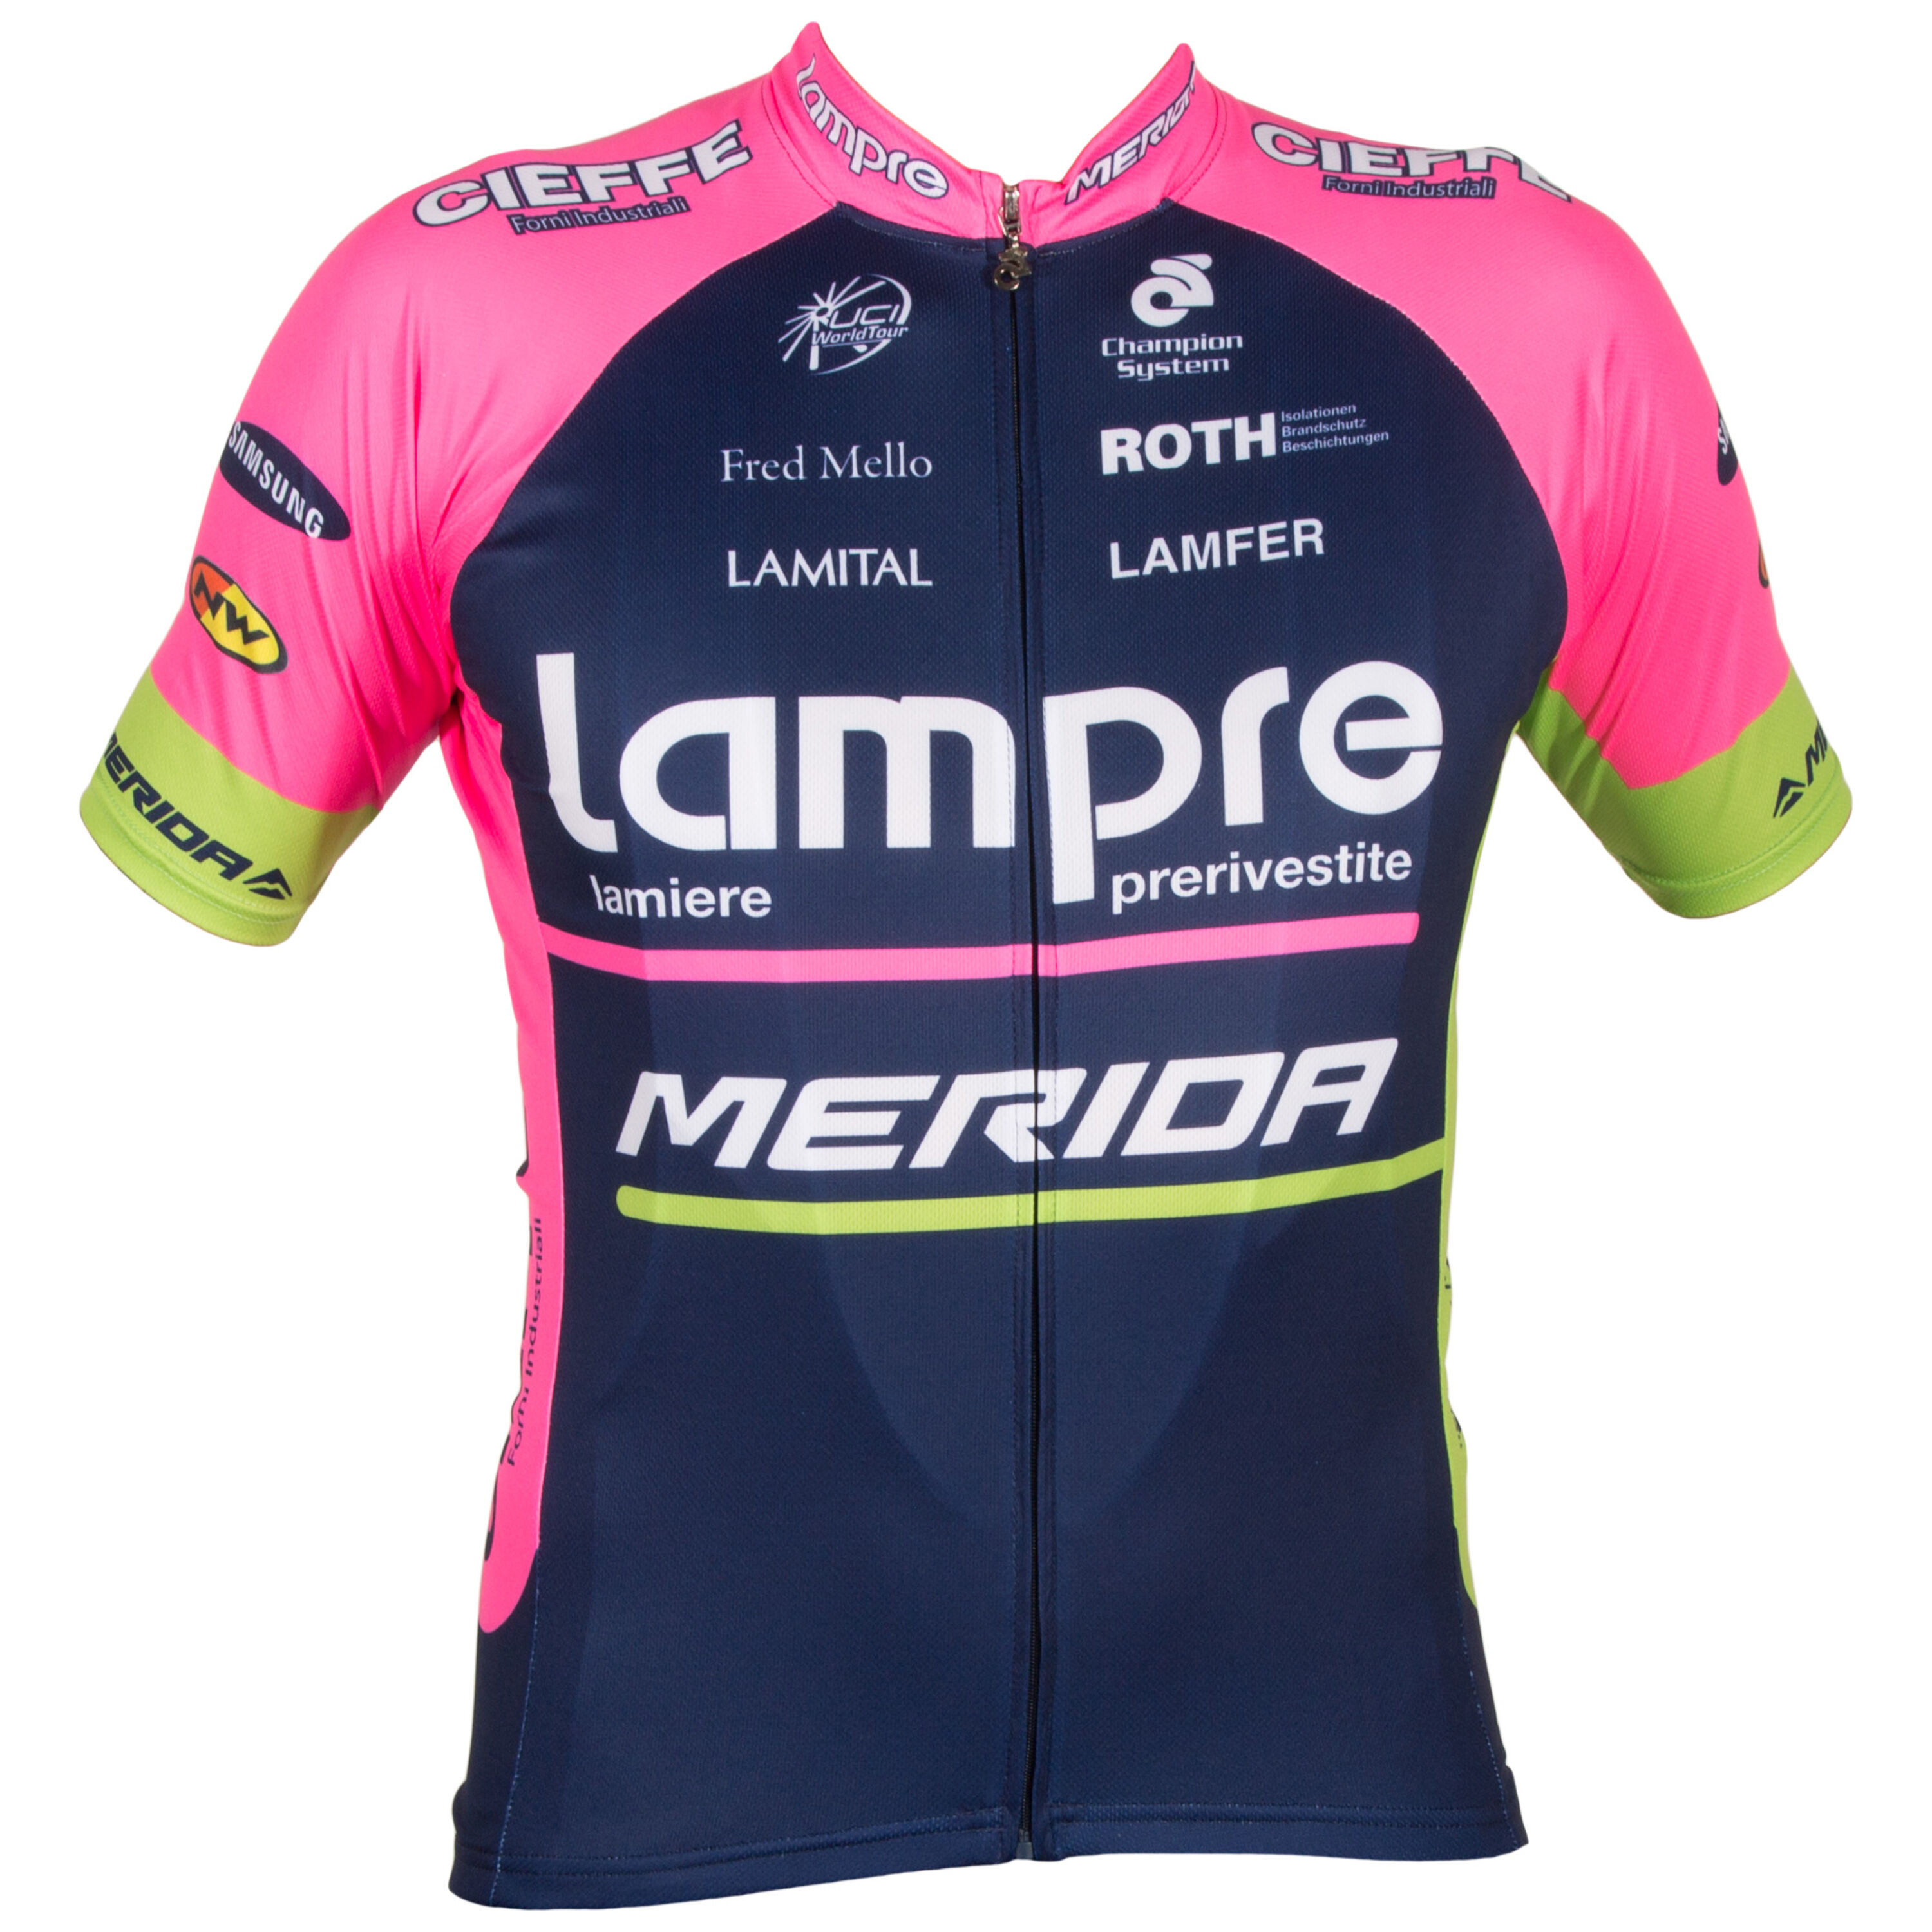 4aeb56721 Be the first to review this product. Champion System Team Lampre Merida  jersey ...